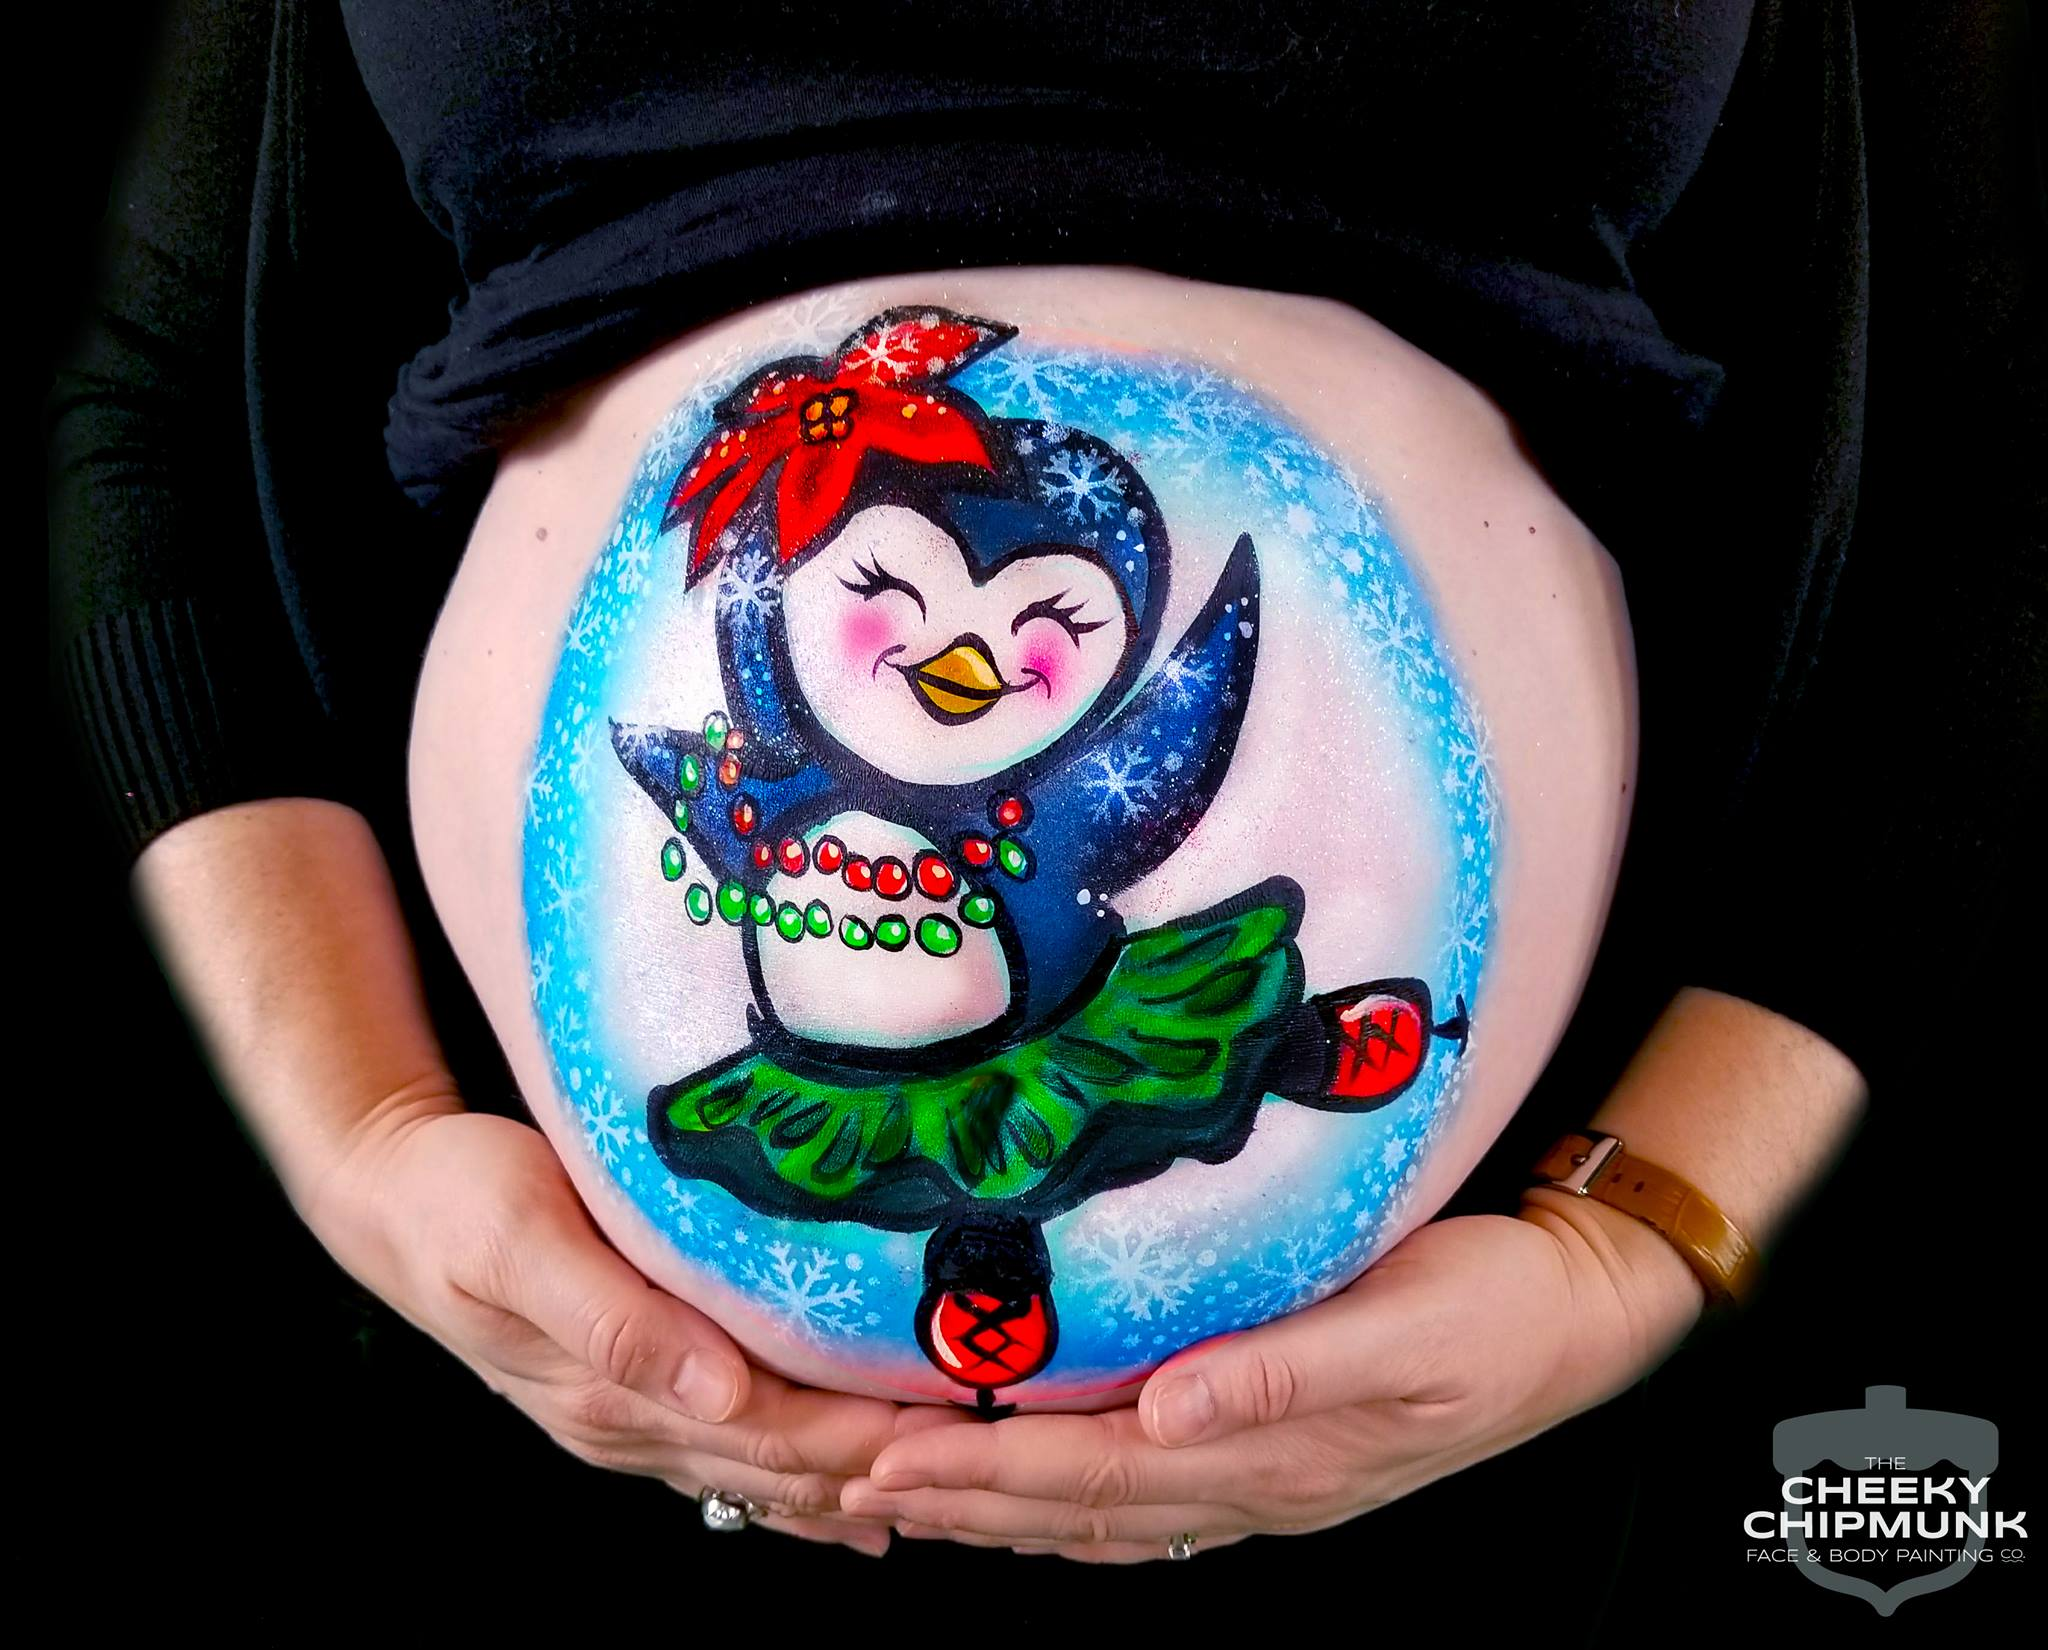 lenore-koppelman-the-cheeky-chipmunk-baby-belly-maternity-pregnancy-belly-art-penguin-ice-skating-dancing-tutu-snow-winter-cute-meredith-publishing-parents-parenting-fitpregnancy.jpg